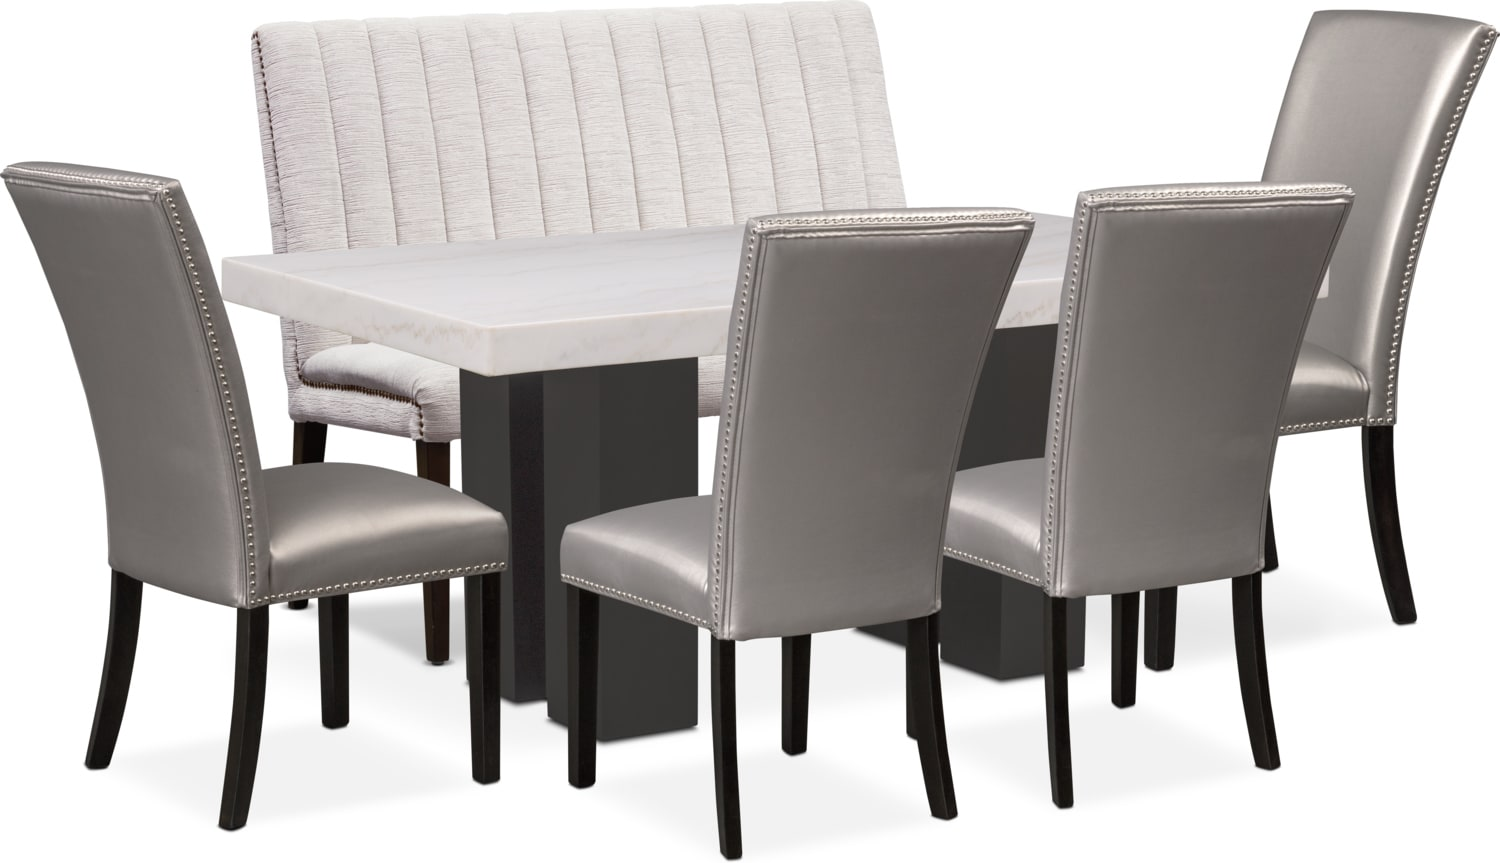 Dining Room Furniture - Artemis Dining Table, 4 Upholstered Side Chairs, and Bench